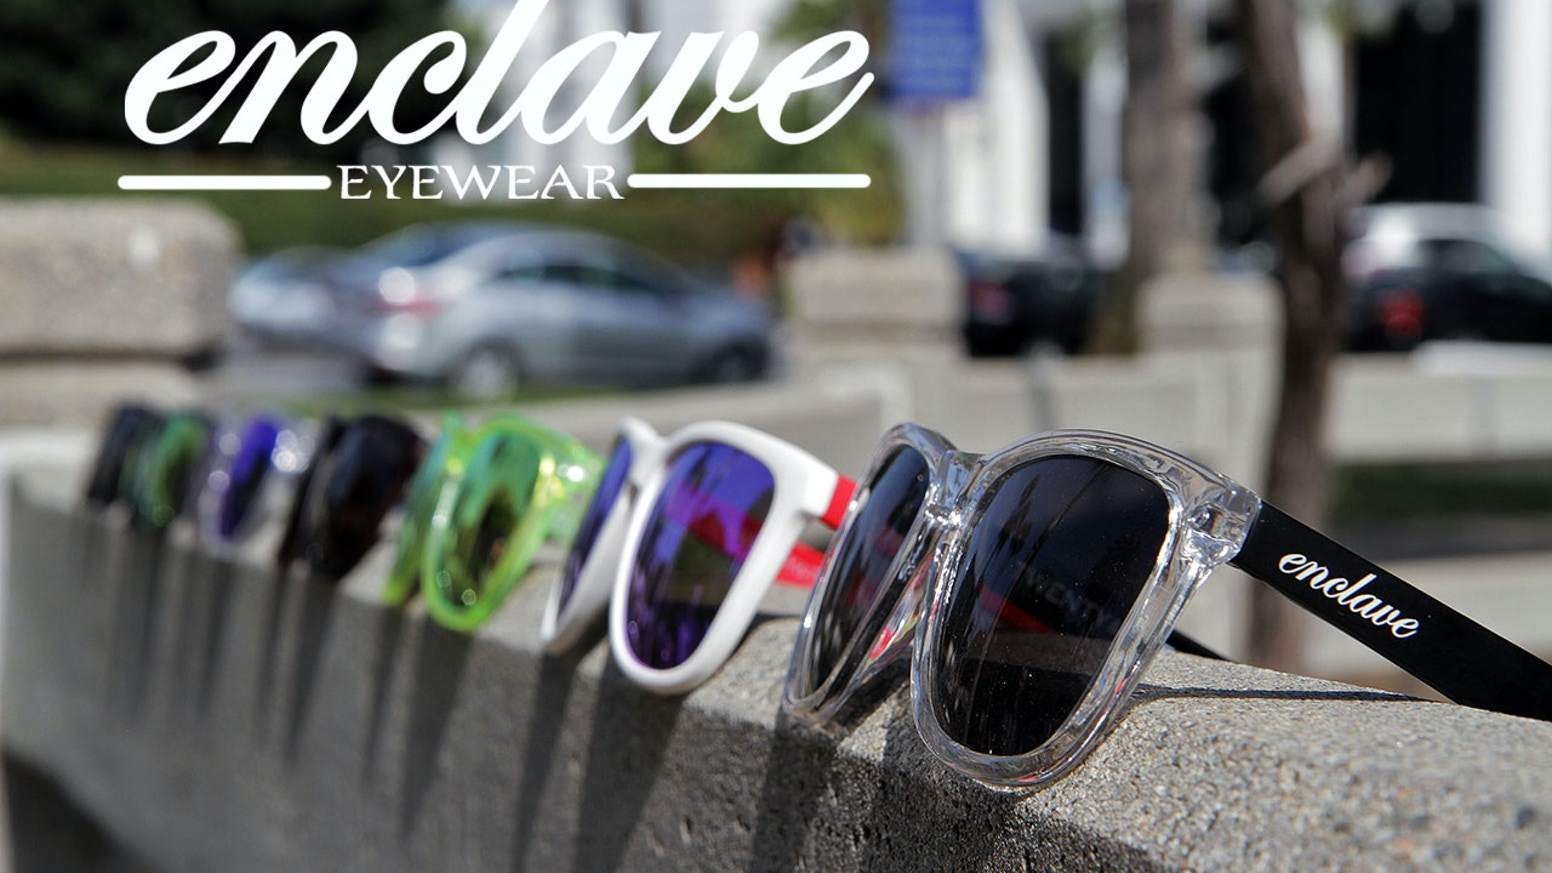 Polarized sunglasses constructed from memory plastic and polycarbonate. Quality materials and classic style.